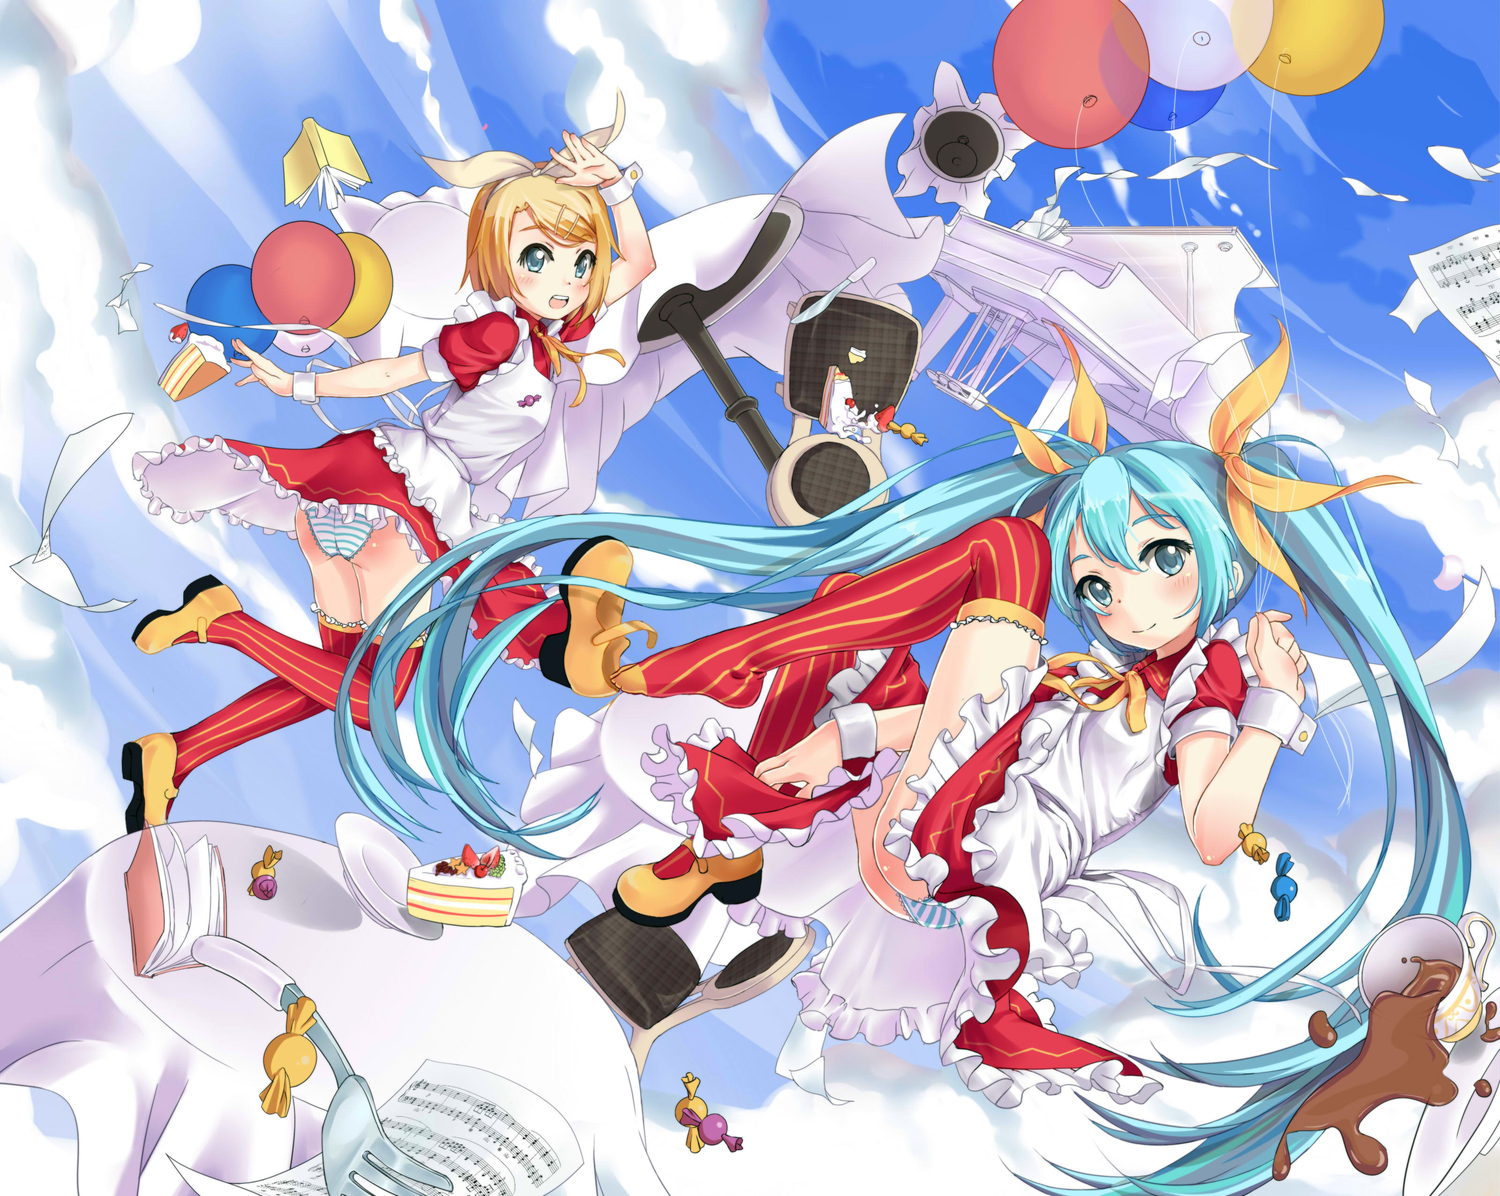 cake codec007 hatsune_miku kagamine_rin panties striped_panties thighhighs underwear vocaloid